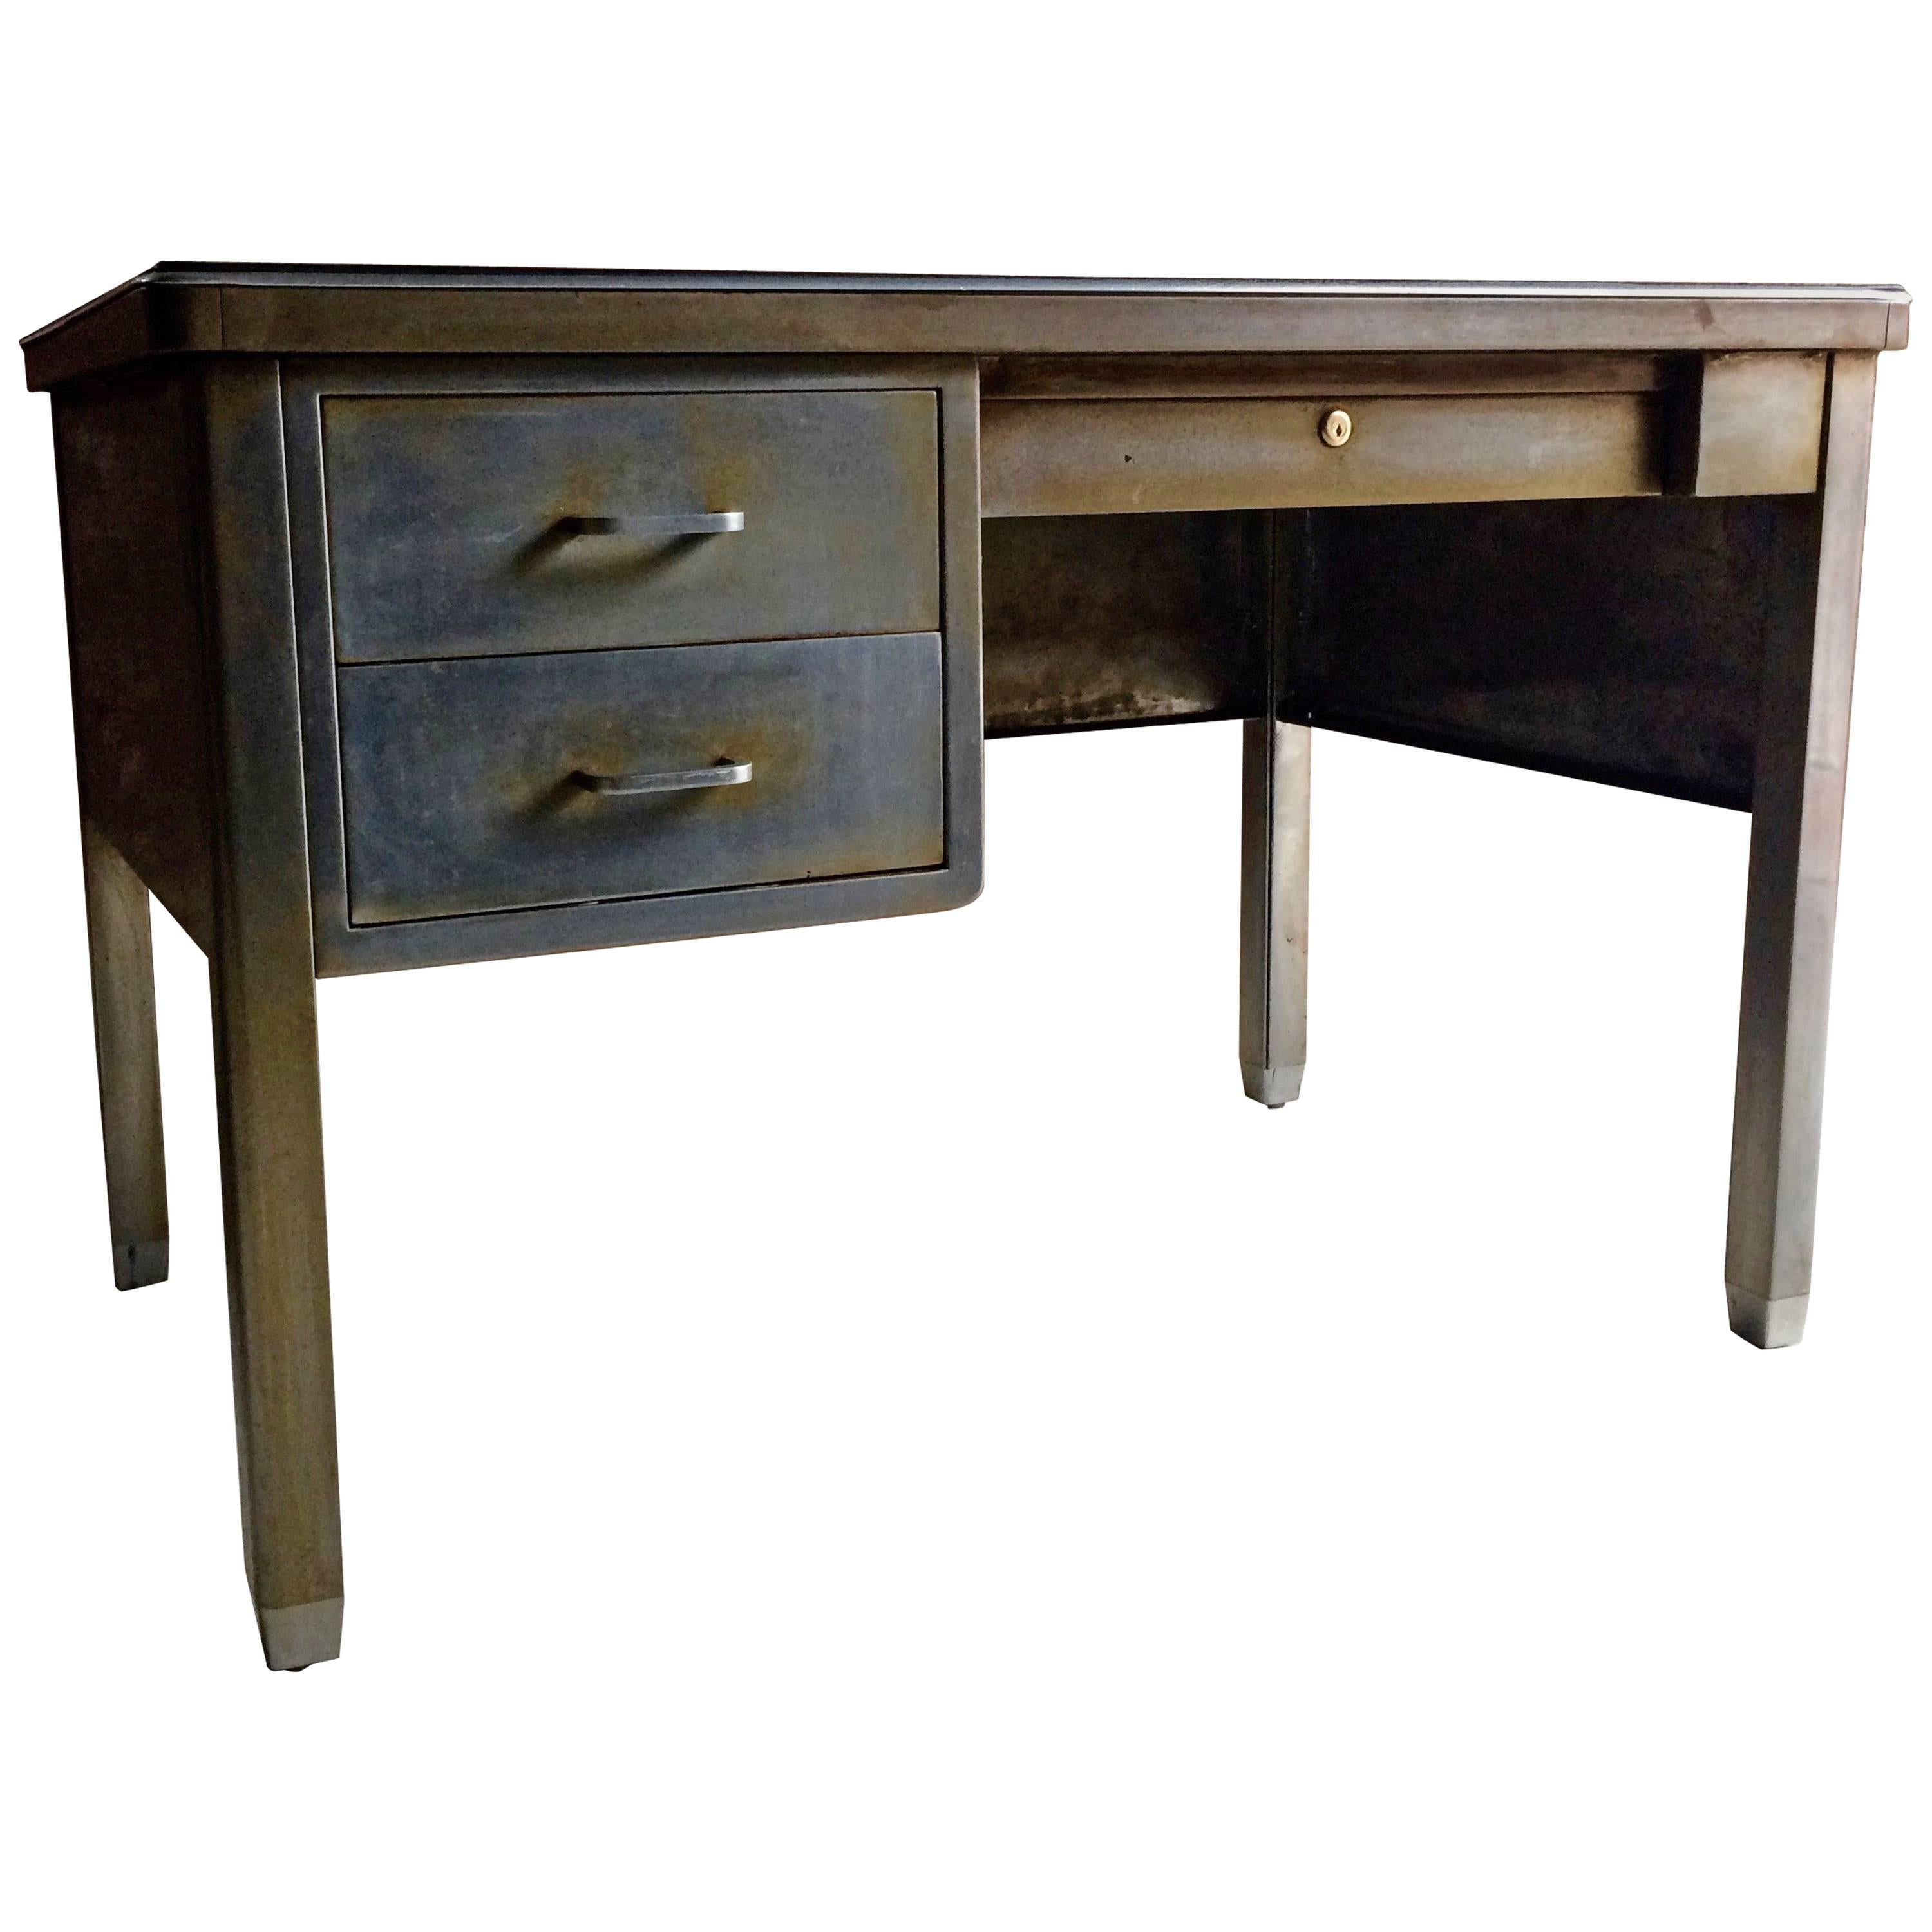 antique 20th century steel industrial writing desk at 1stdibs rh 1stdibs com small industrial writing desk industrial writing desk with shelves